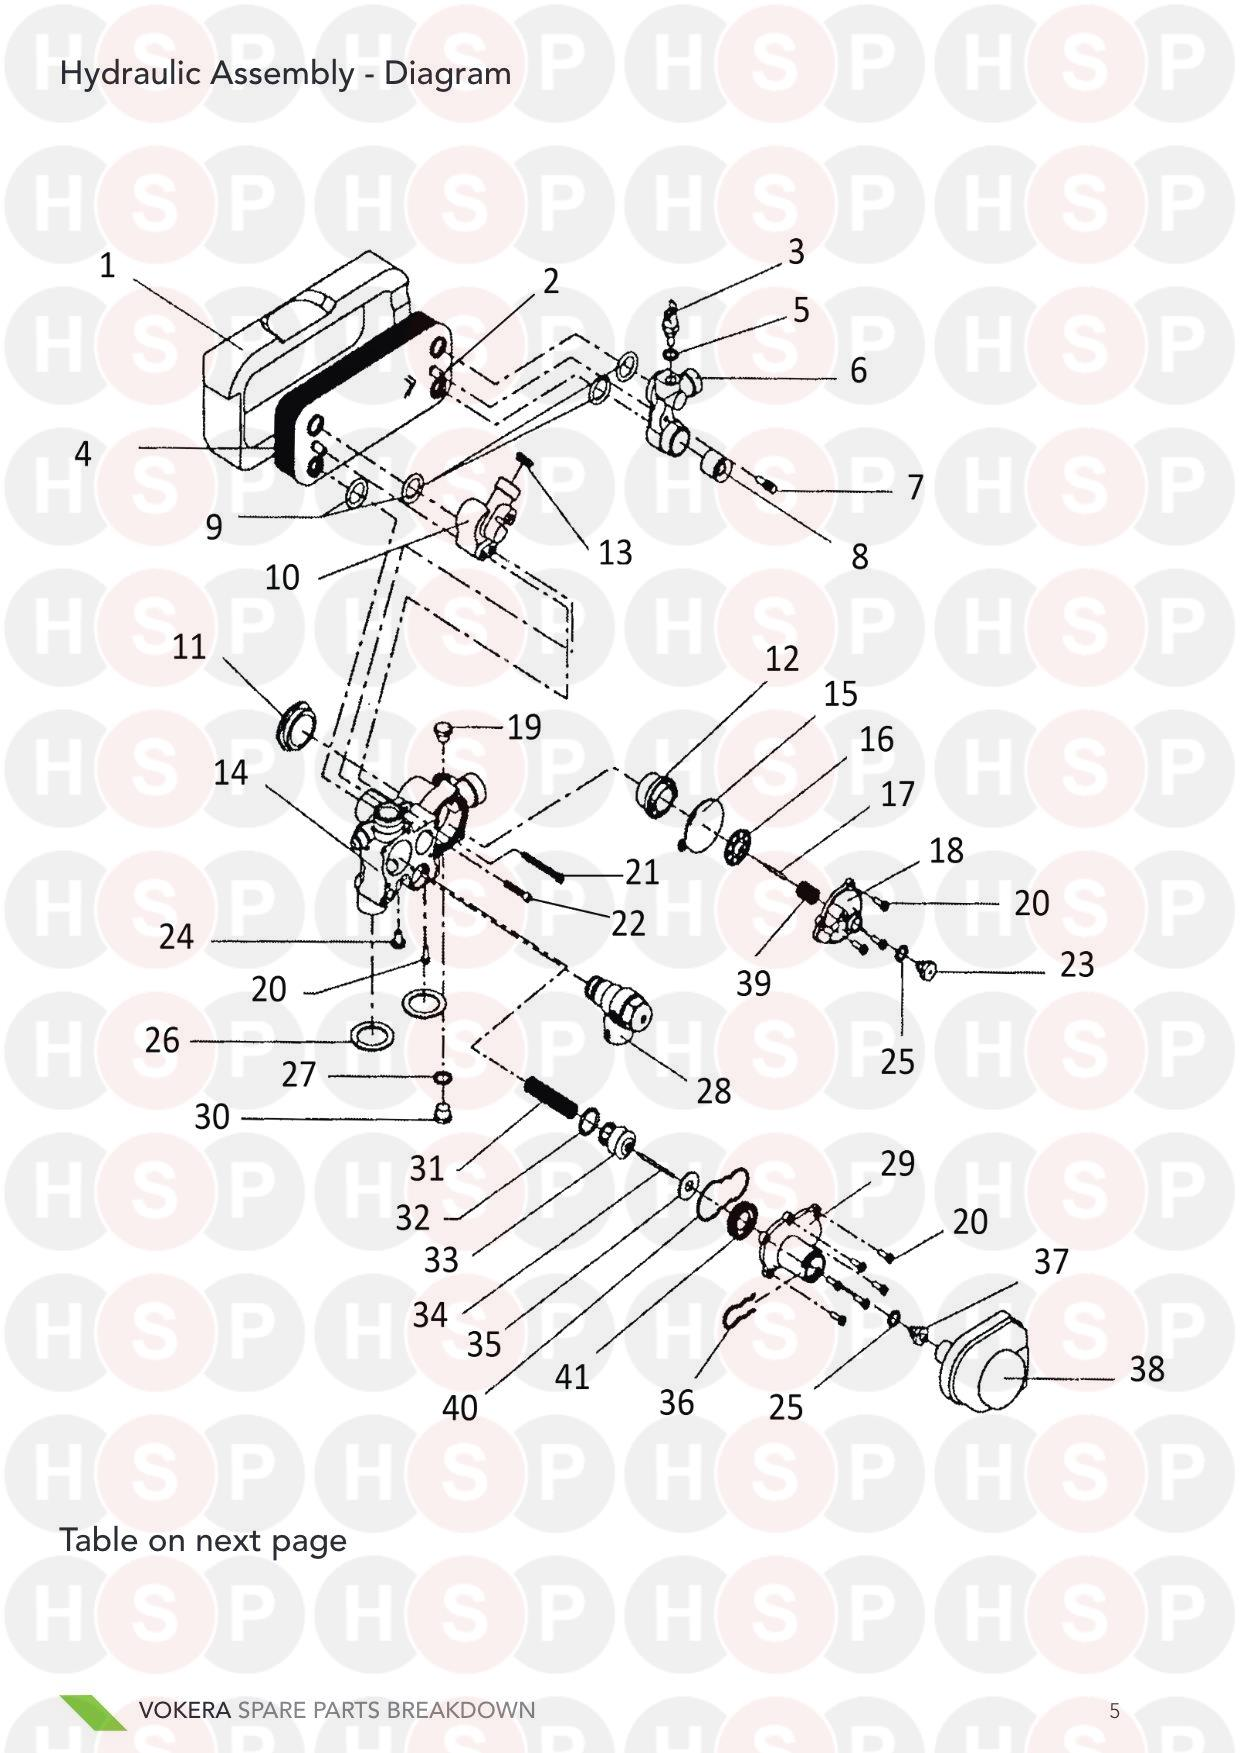 Hydraulics diagram for Vokera 24 Mark 1 Serial # Up To 161380001